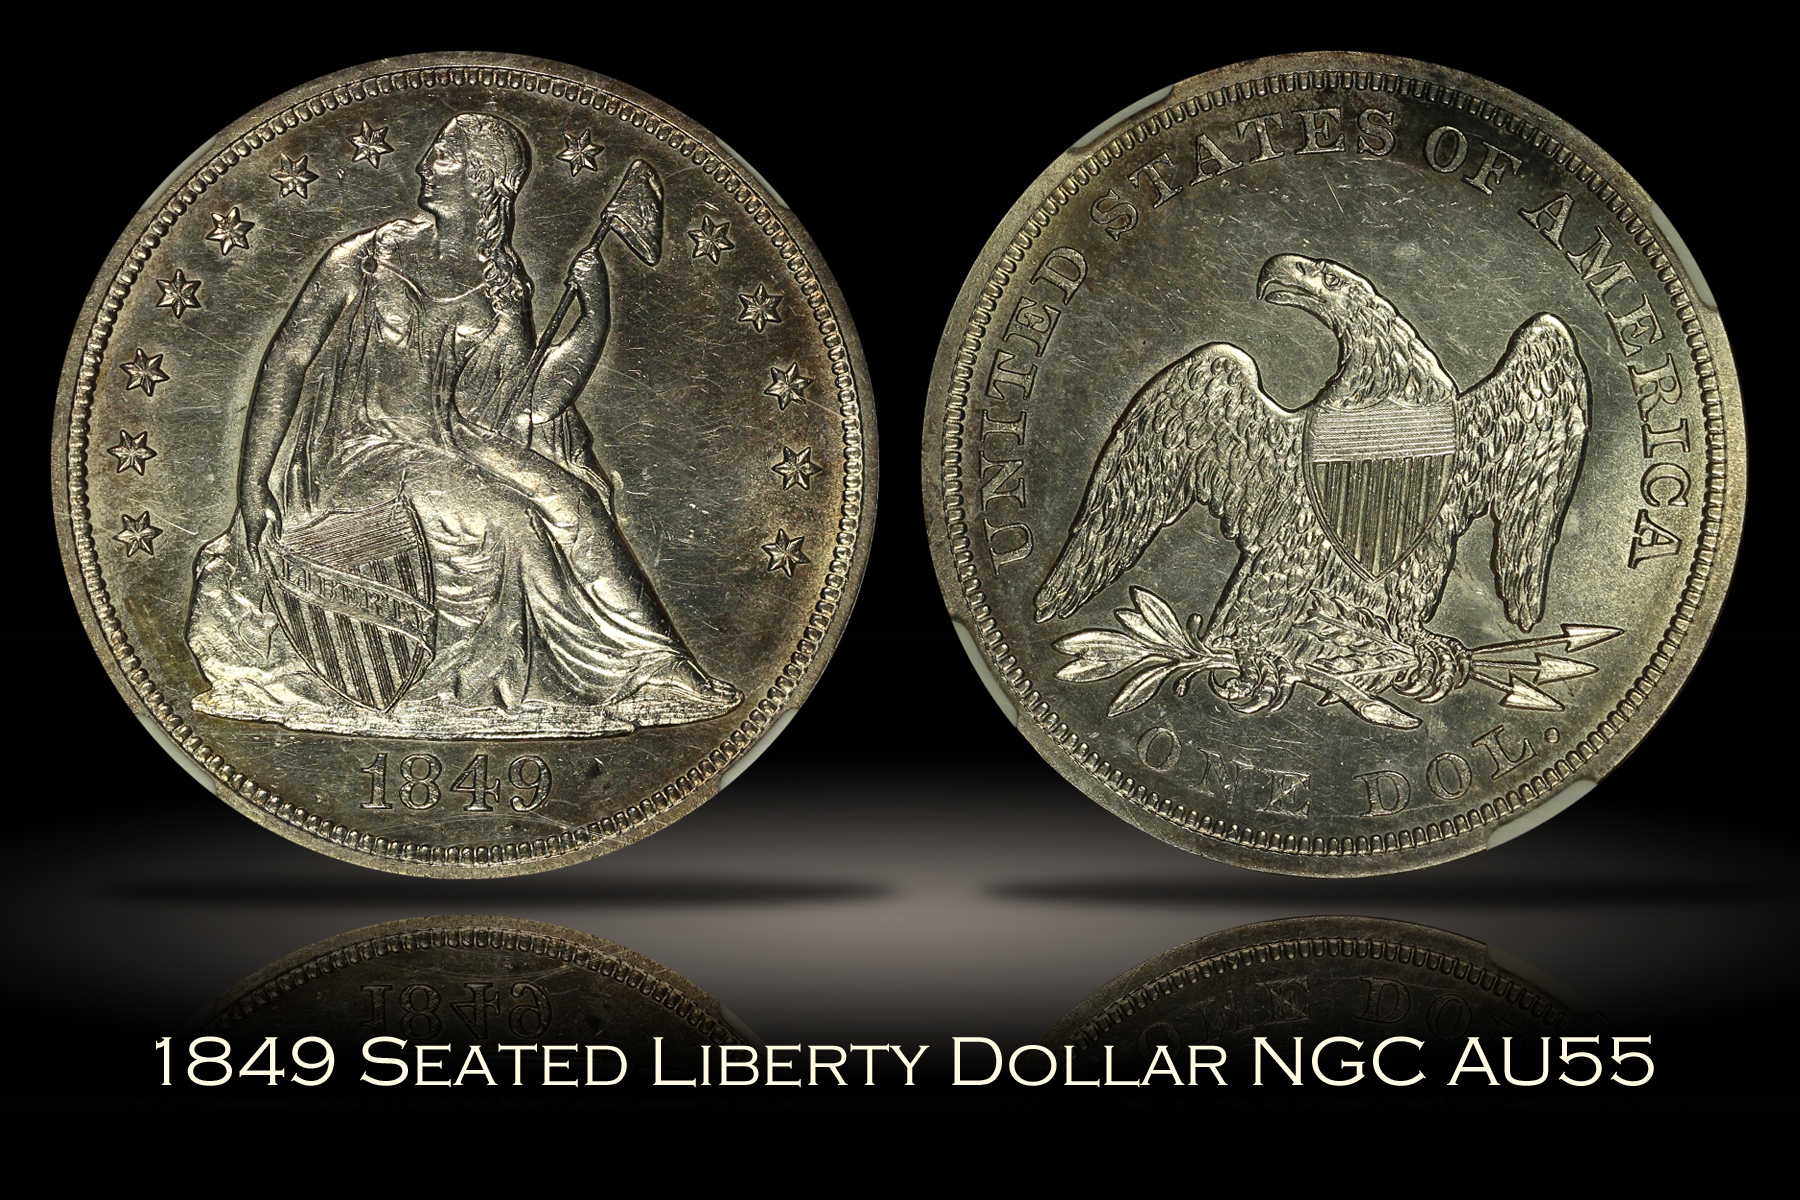 1849 Seated Liberty Dollar NGC AU55